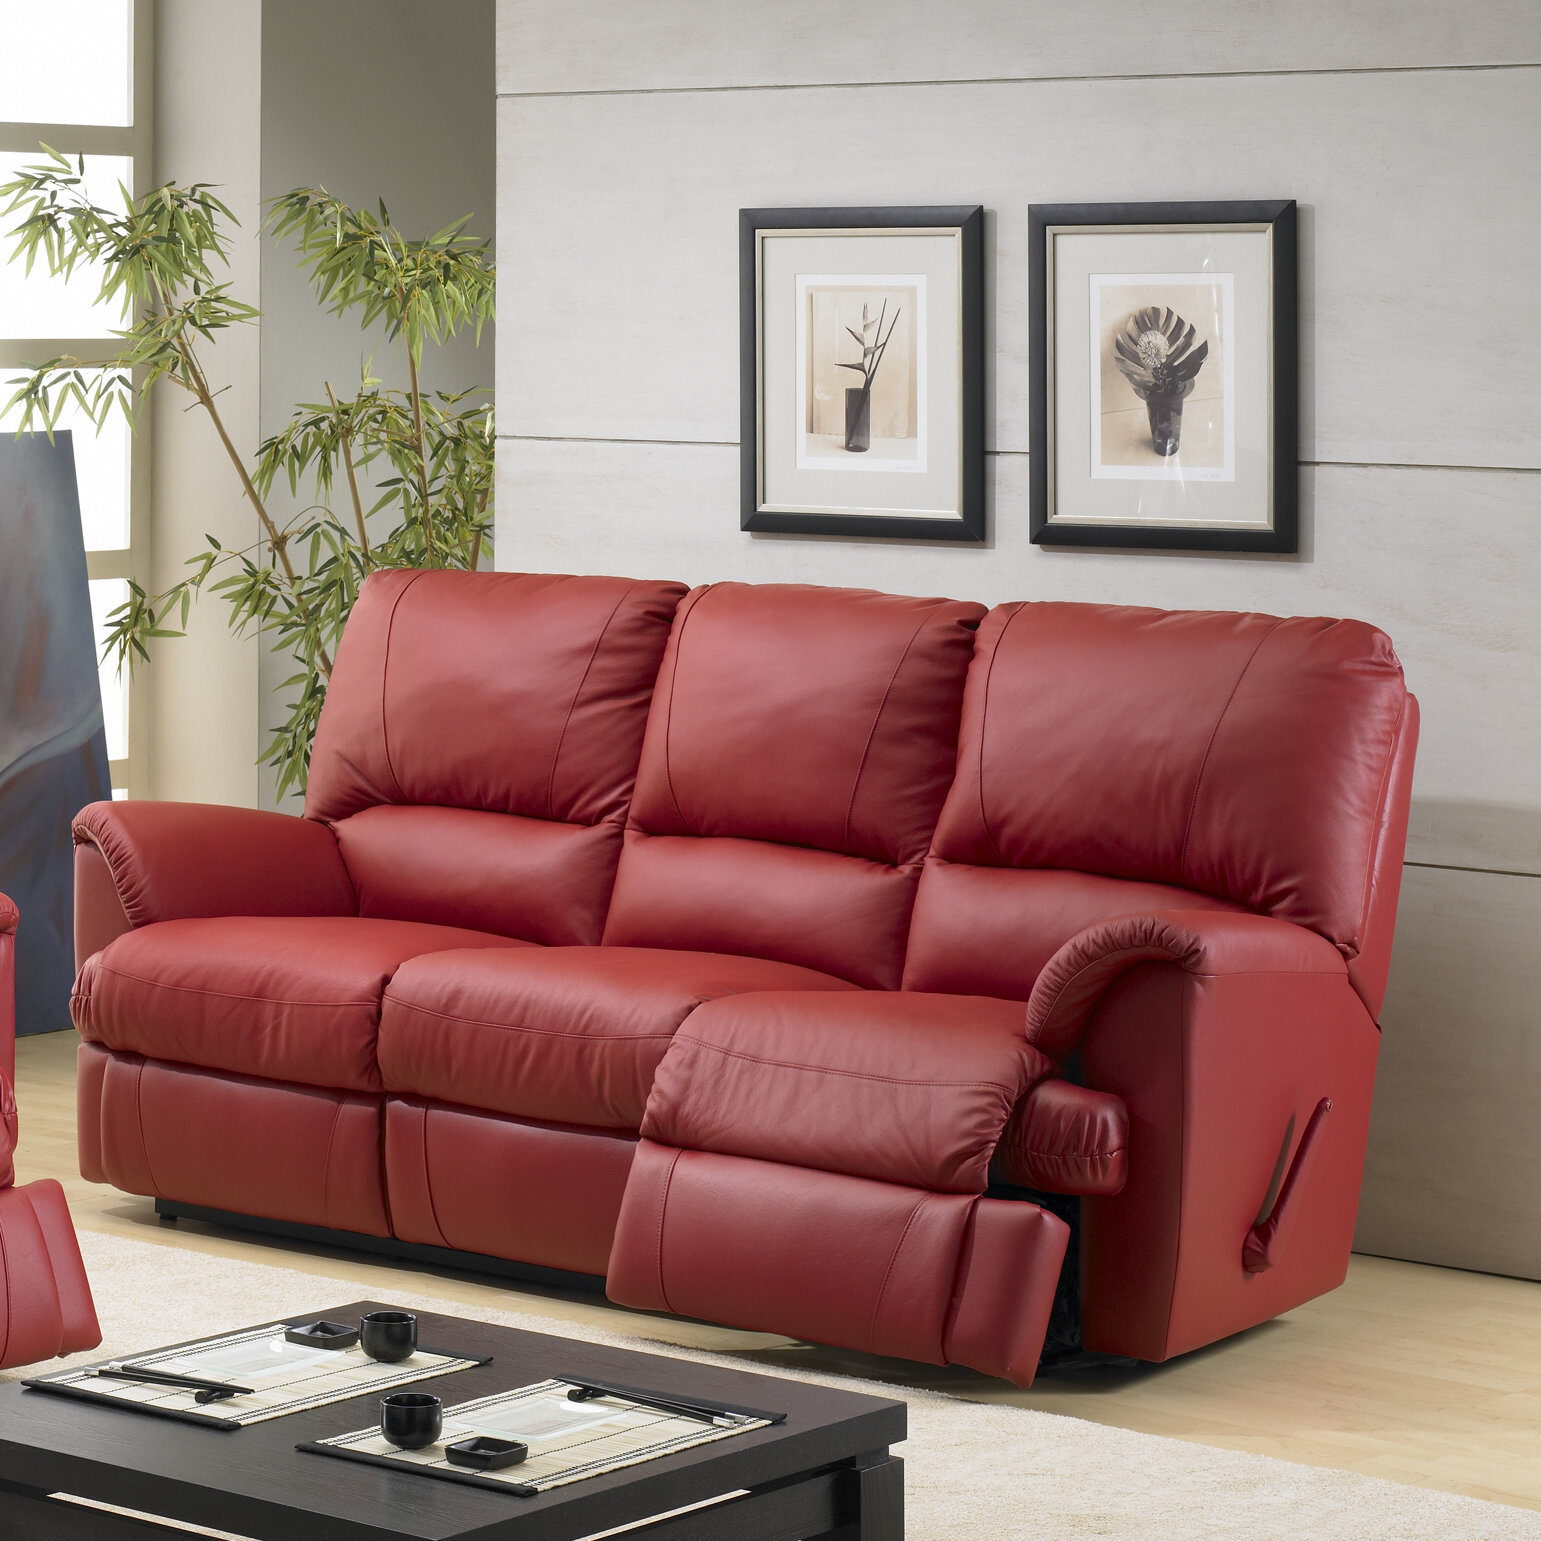 Relaxon Mylaine Leather Reclining Sofa